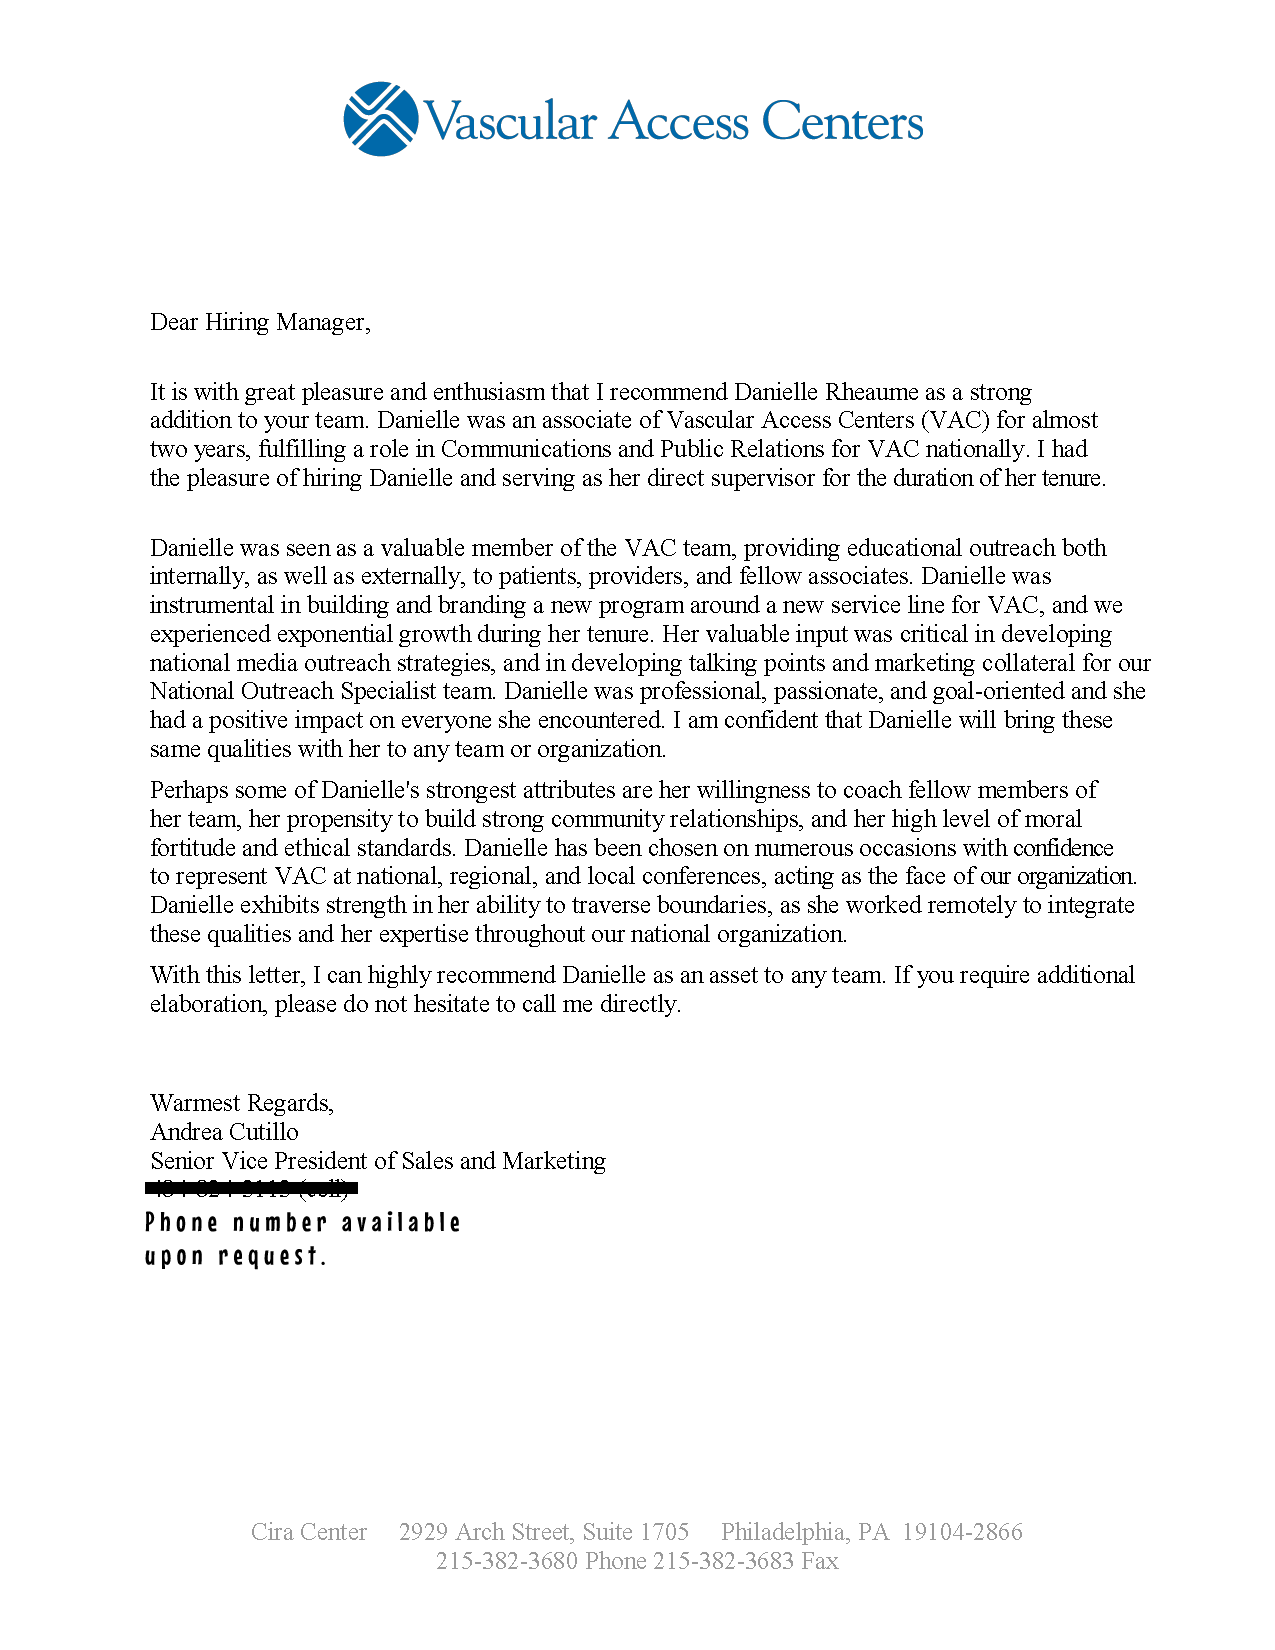 Professional Letter Of Recommendation Example Recommendation – Free Sample Professional Letter of Recommendation